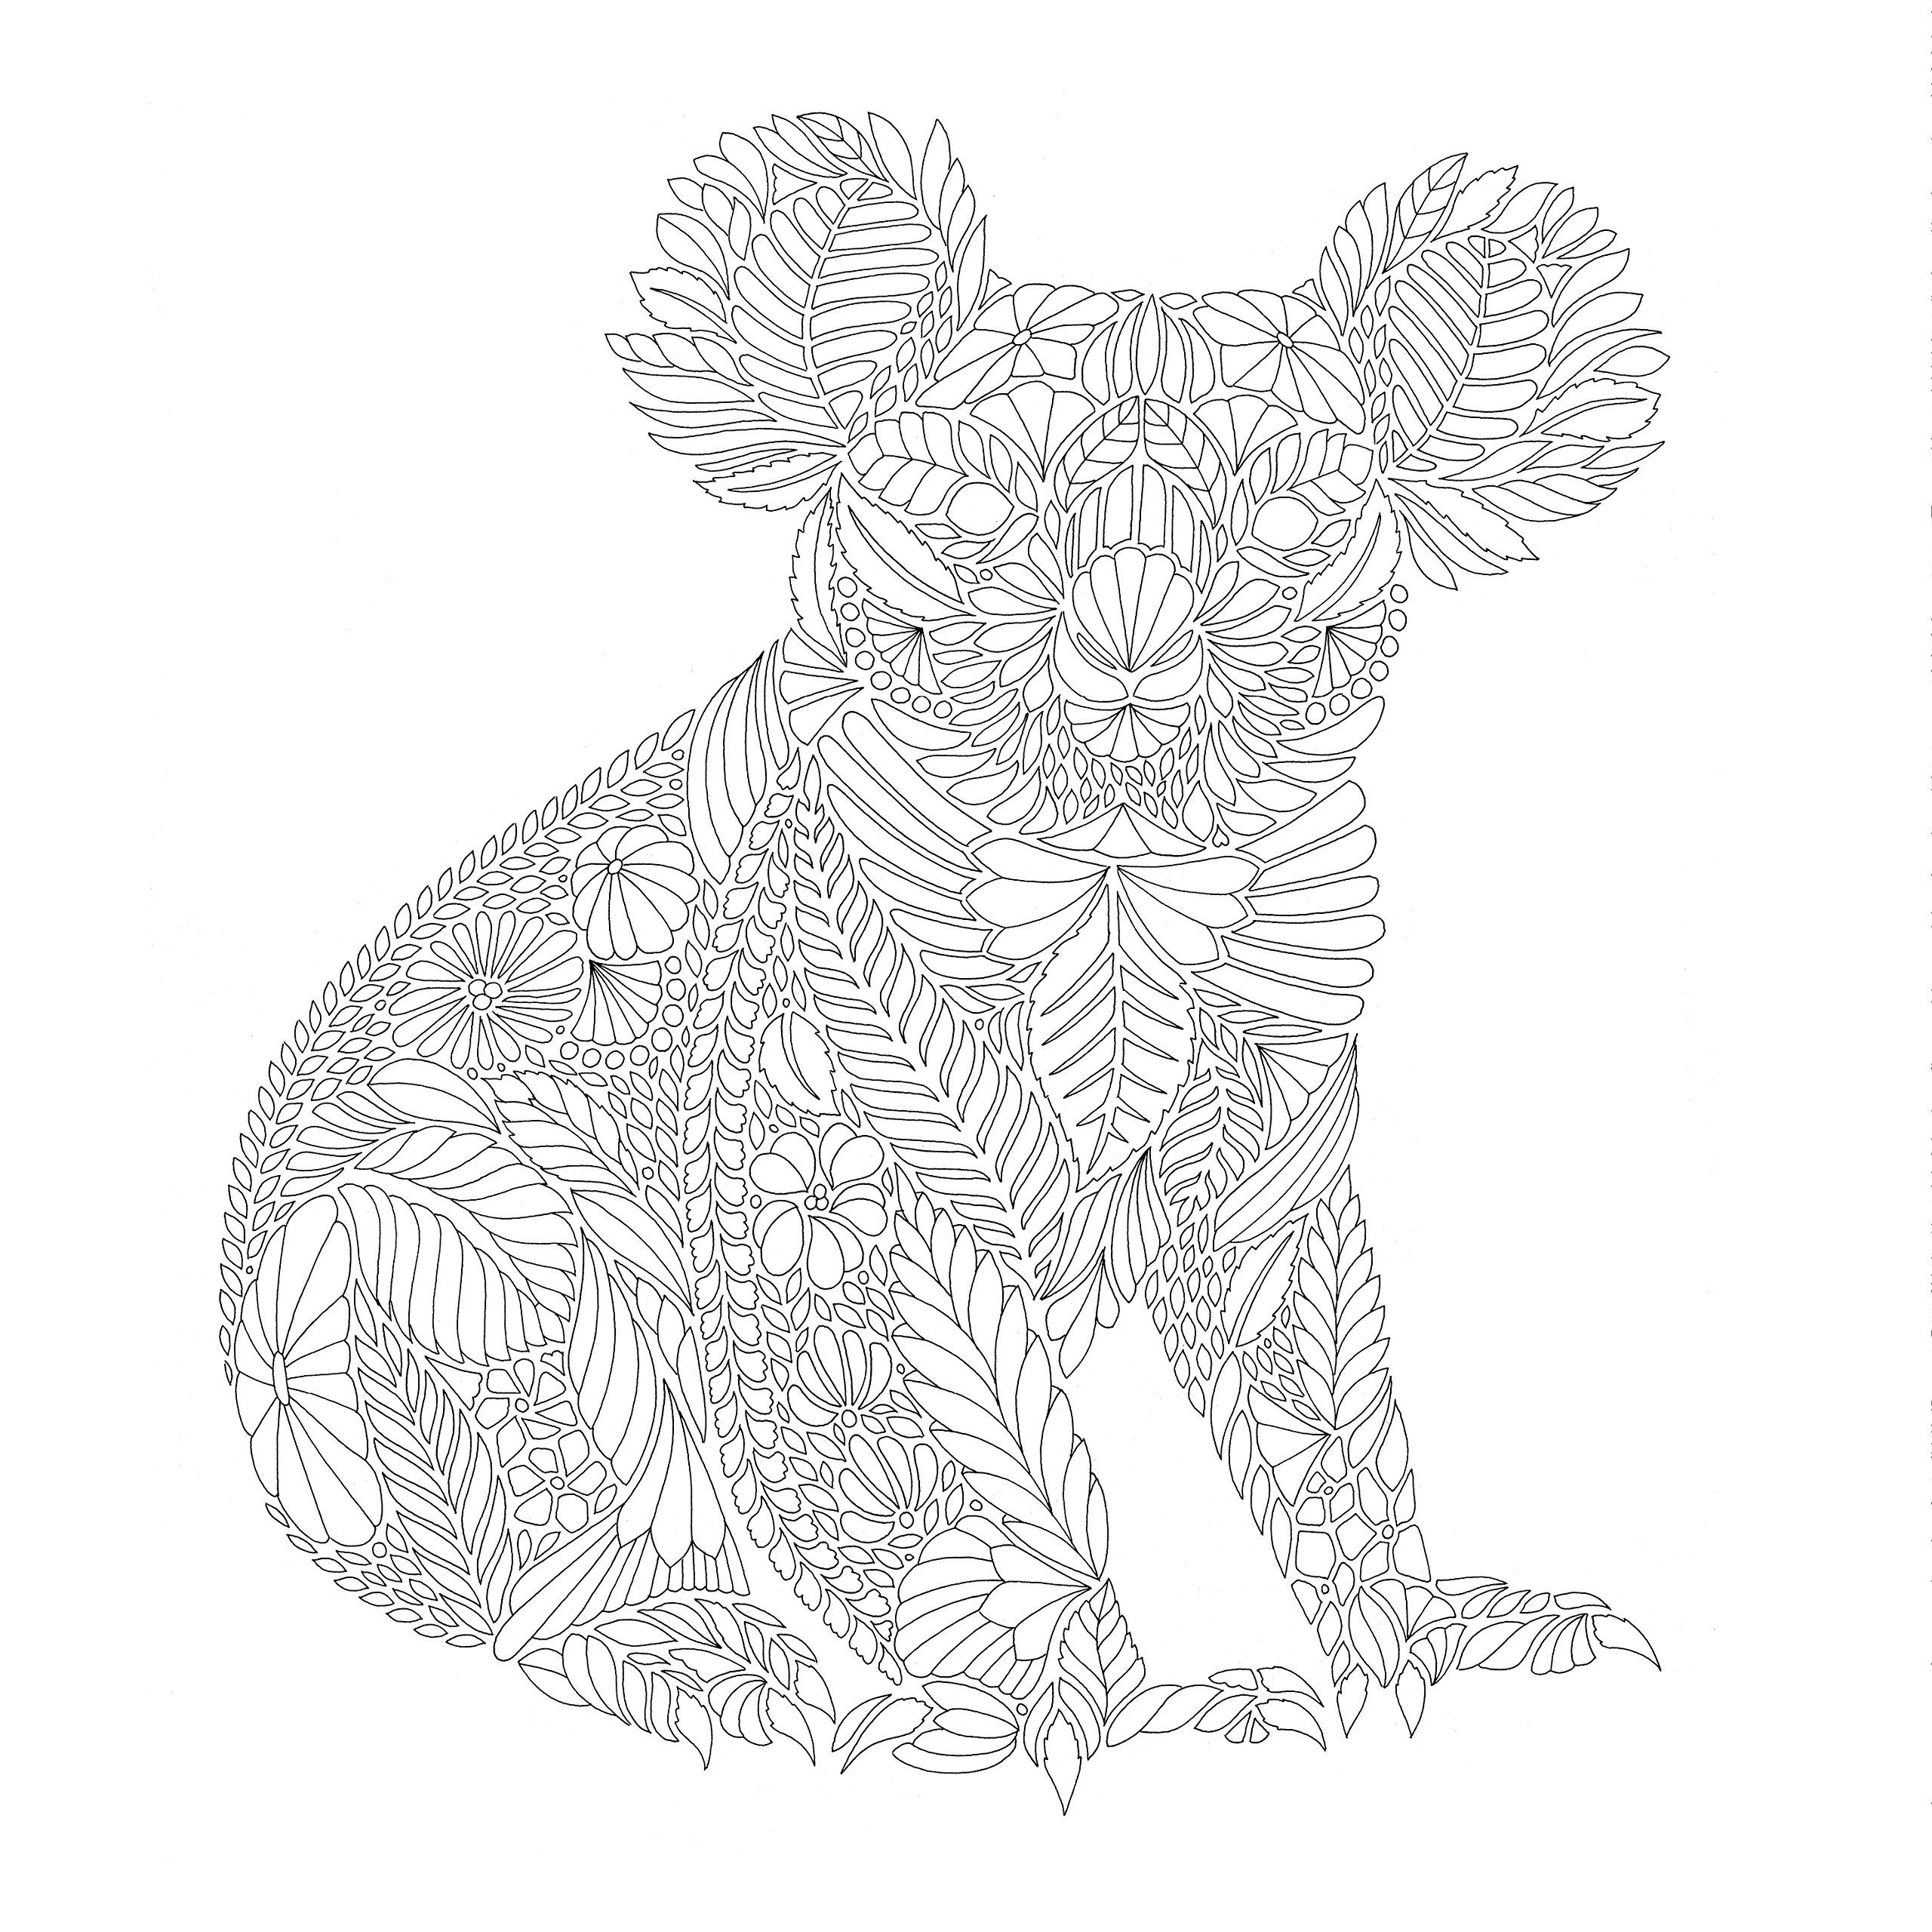 animal kingdom coloring pages | Beautiful Birds and Treetop Treasures by Millie Marotta ...